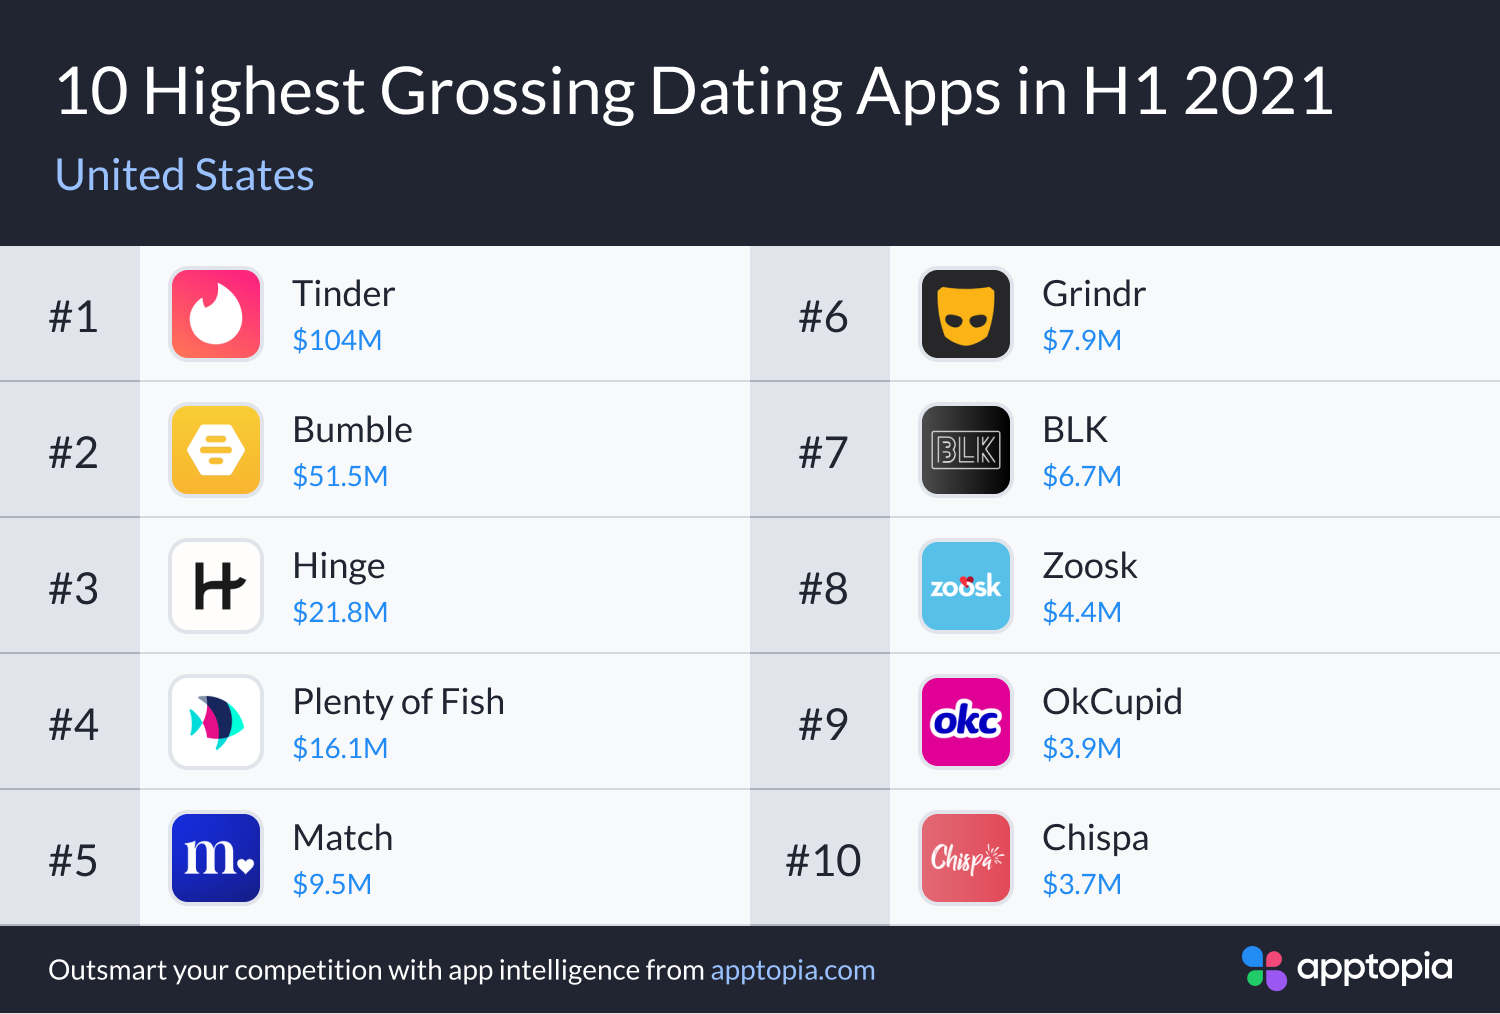 highest grossing US dating apps H1 2021